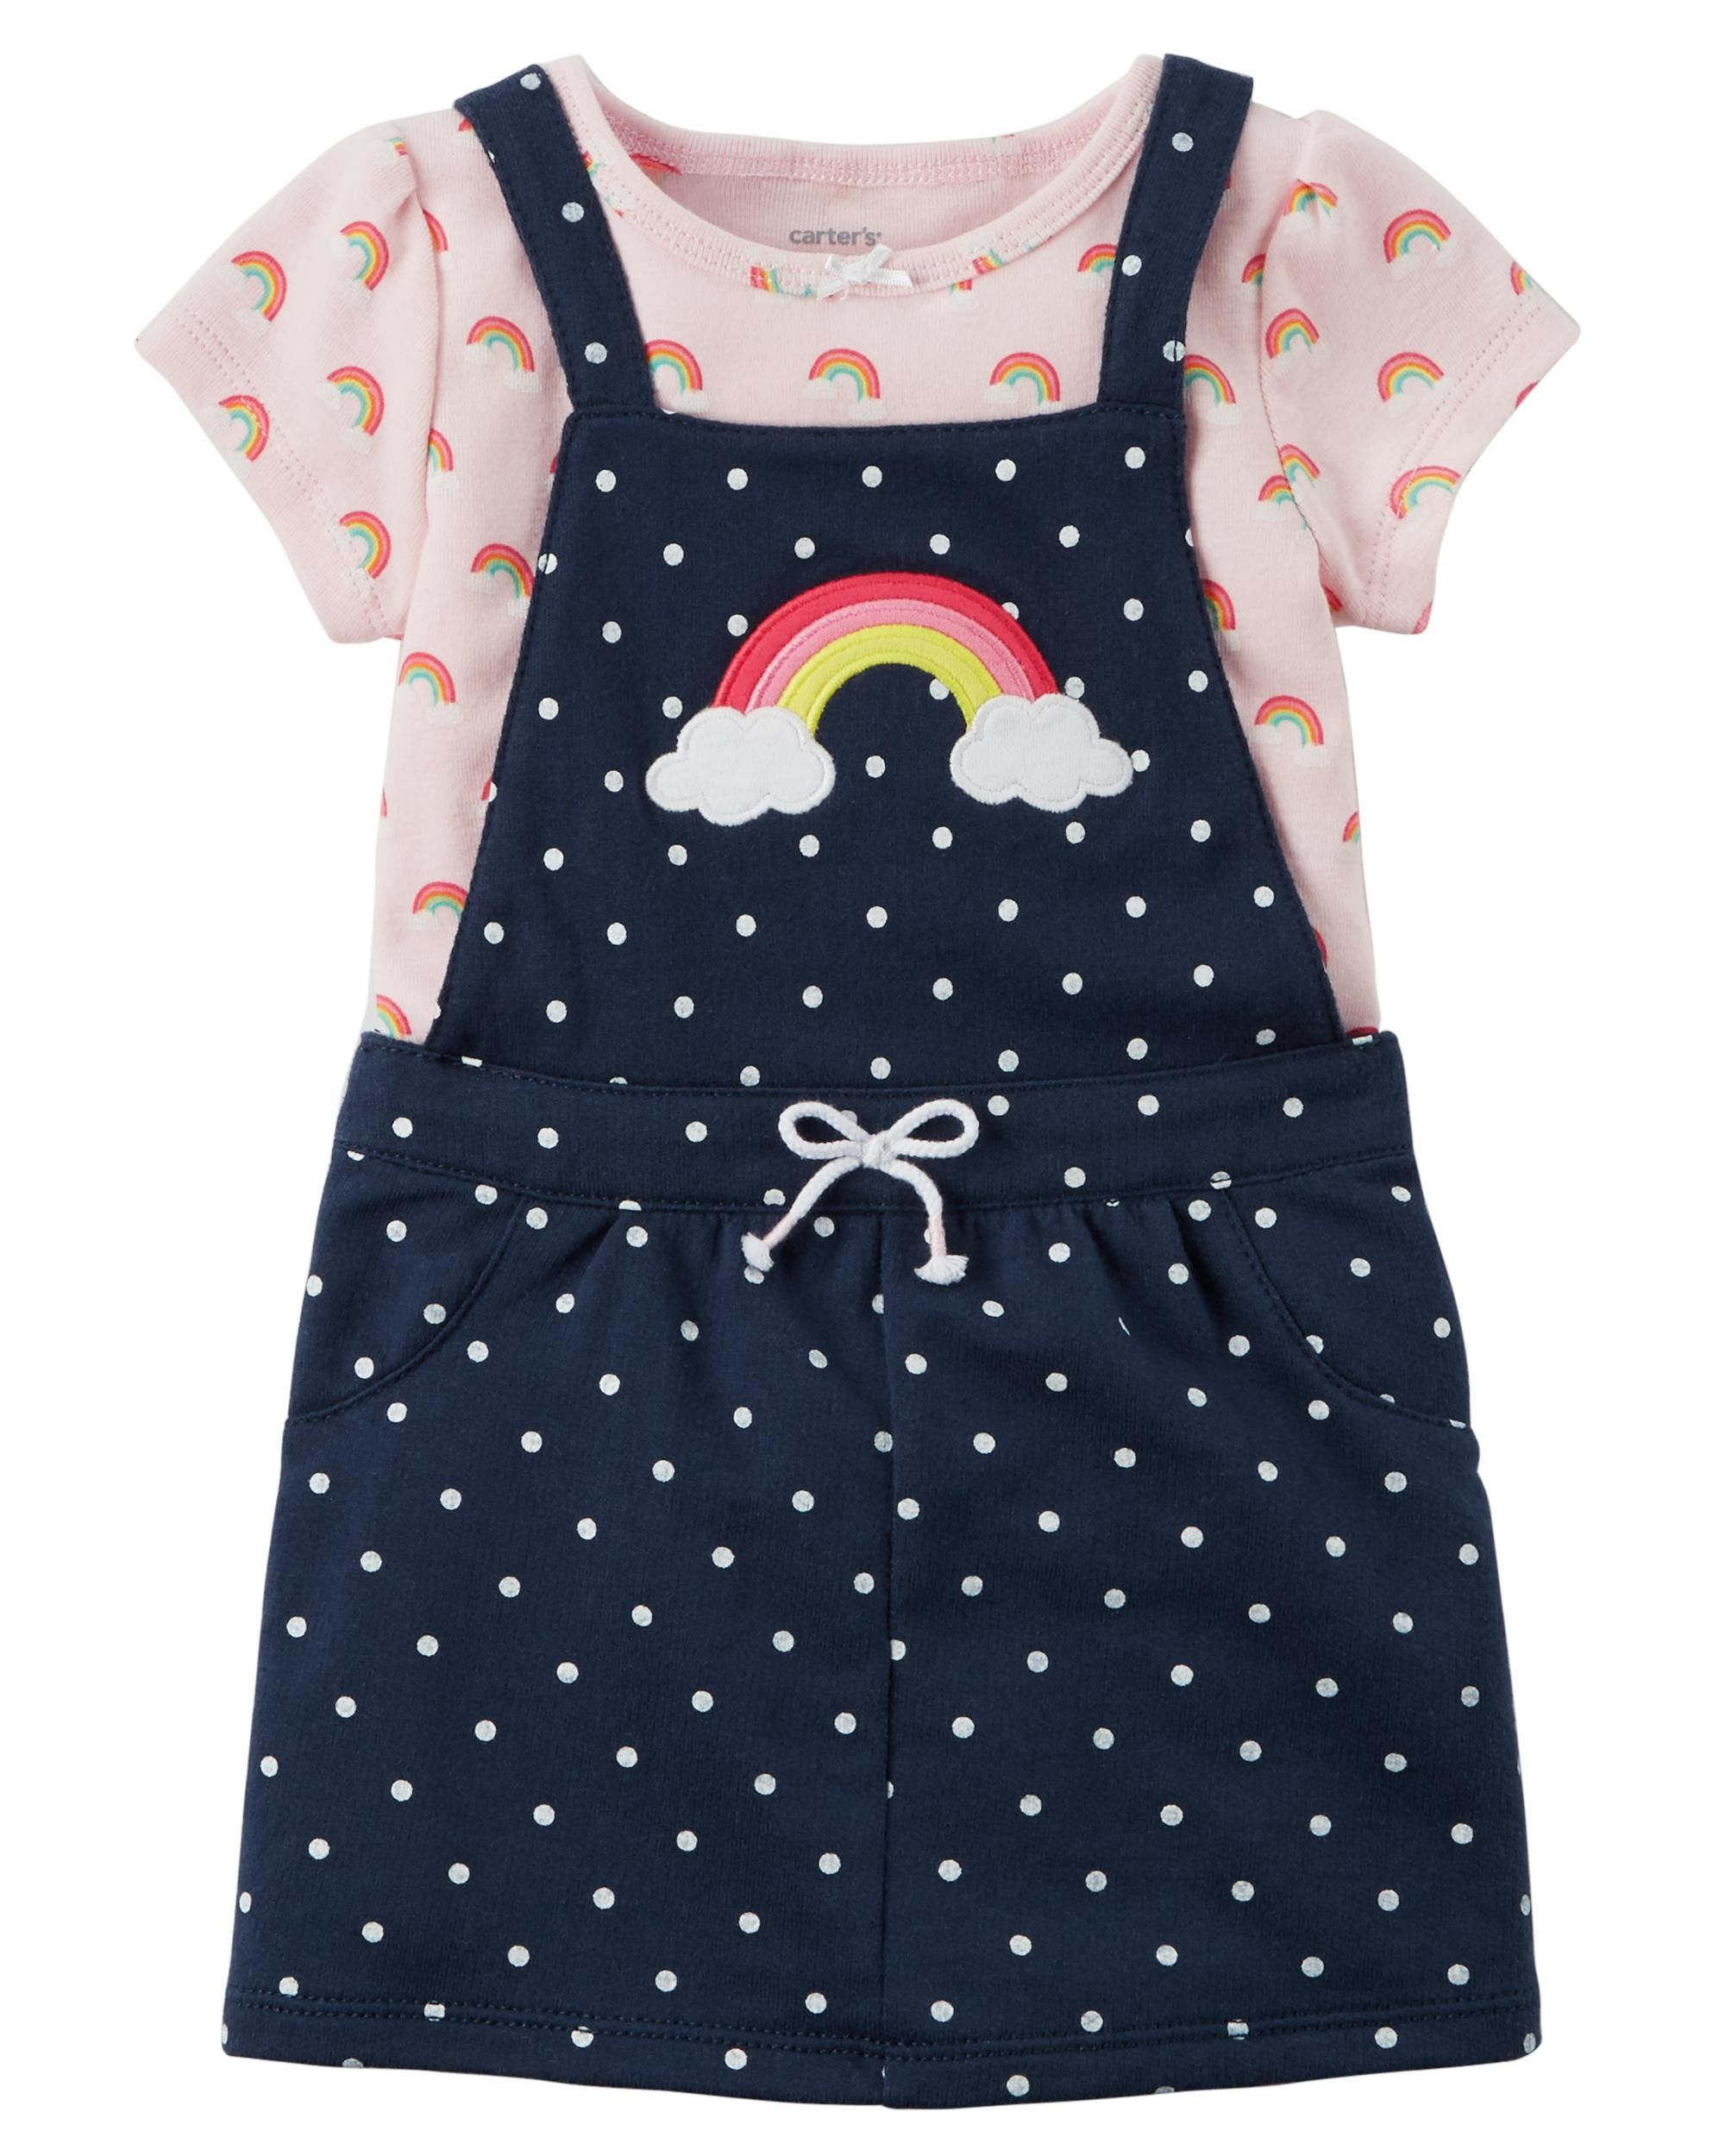 3455fb813 2-Piece Bodysuit & Jumper Set | Baby Clothes! | Carters baby girl ...